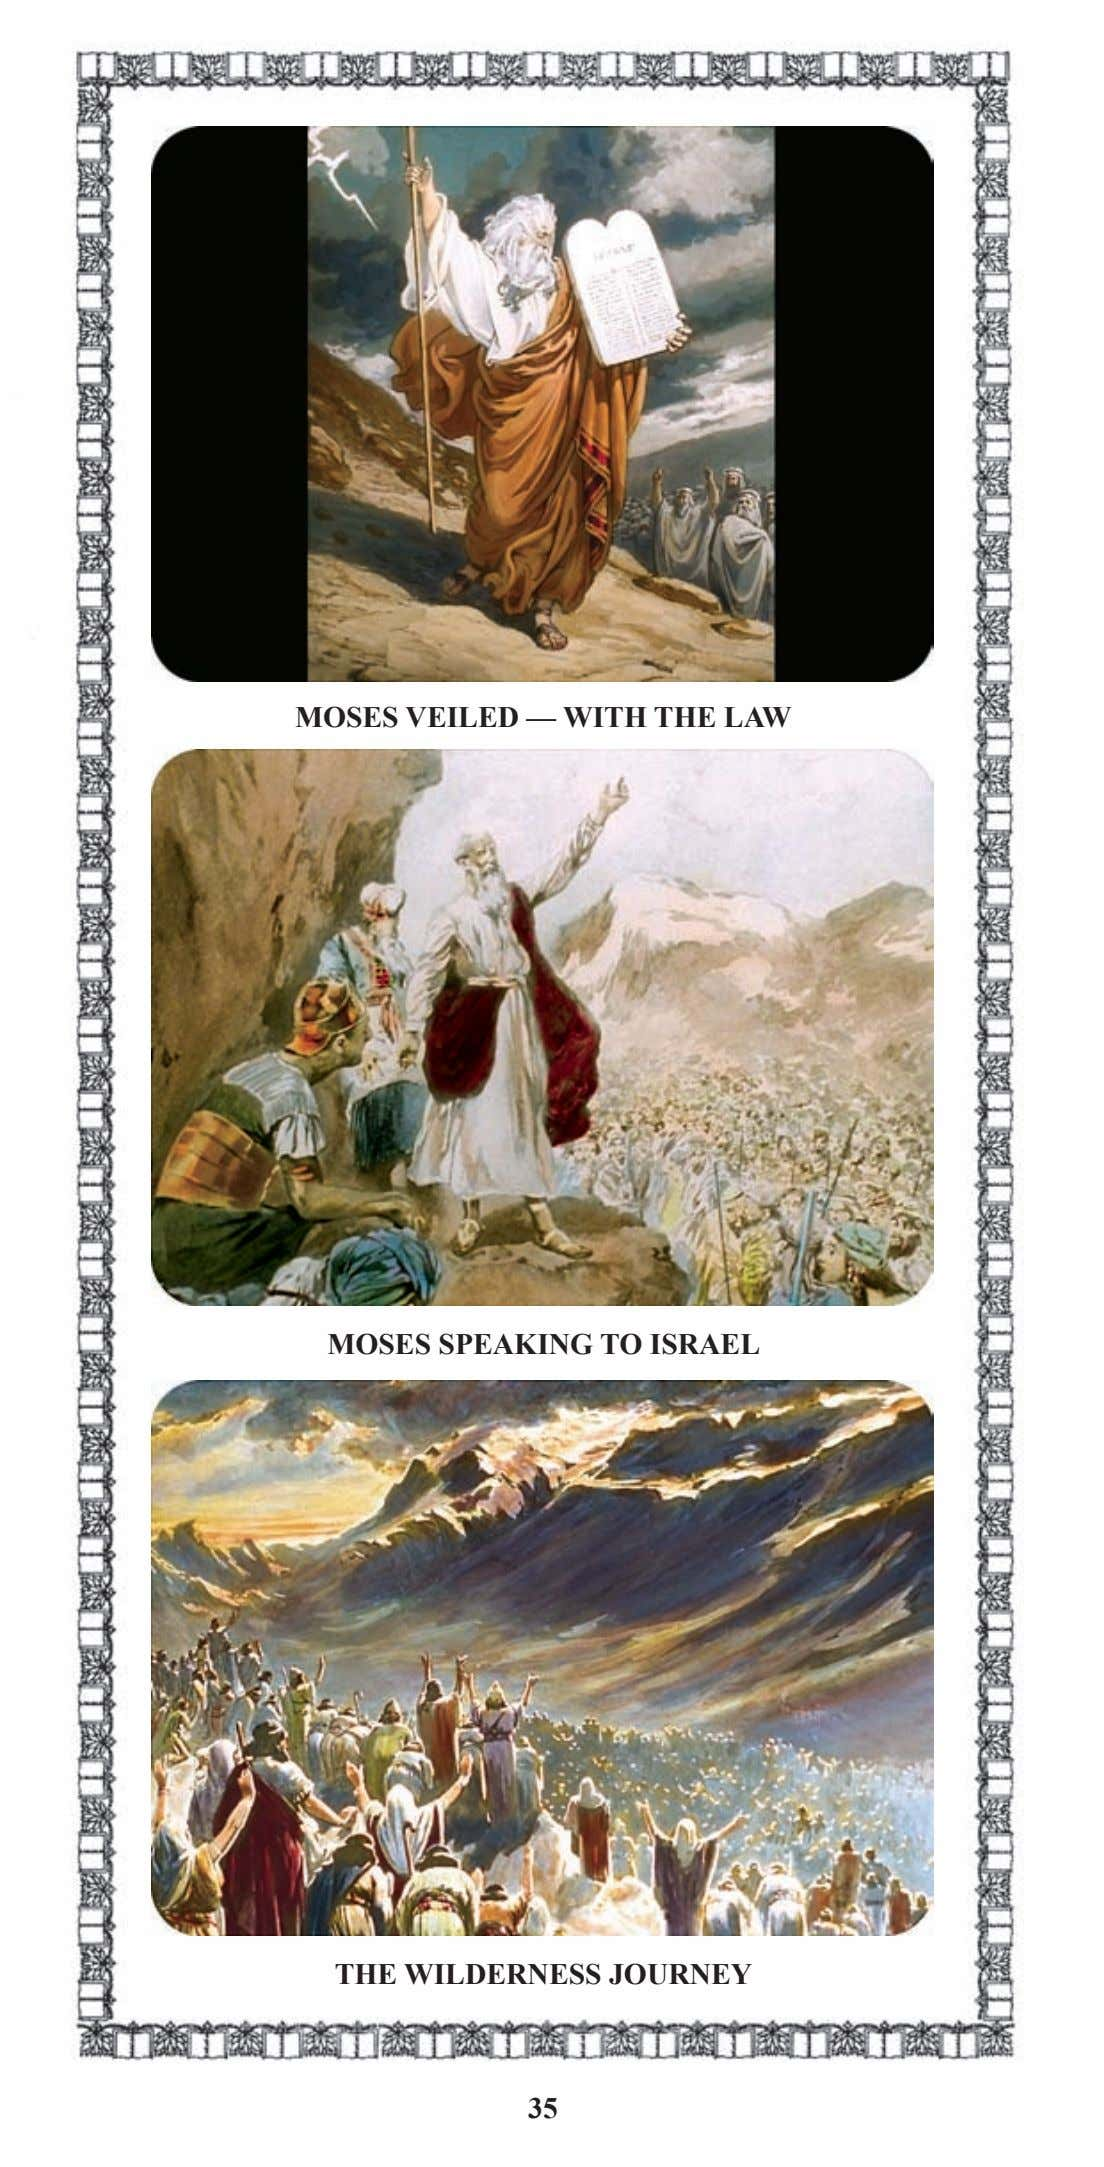 MOSES VEILED — WITH THE LAW MOSES SPEAKING TO ISRAEL THE WILDERNESS JOURNEY 35